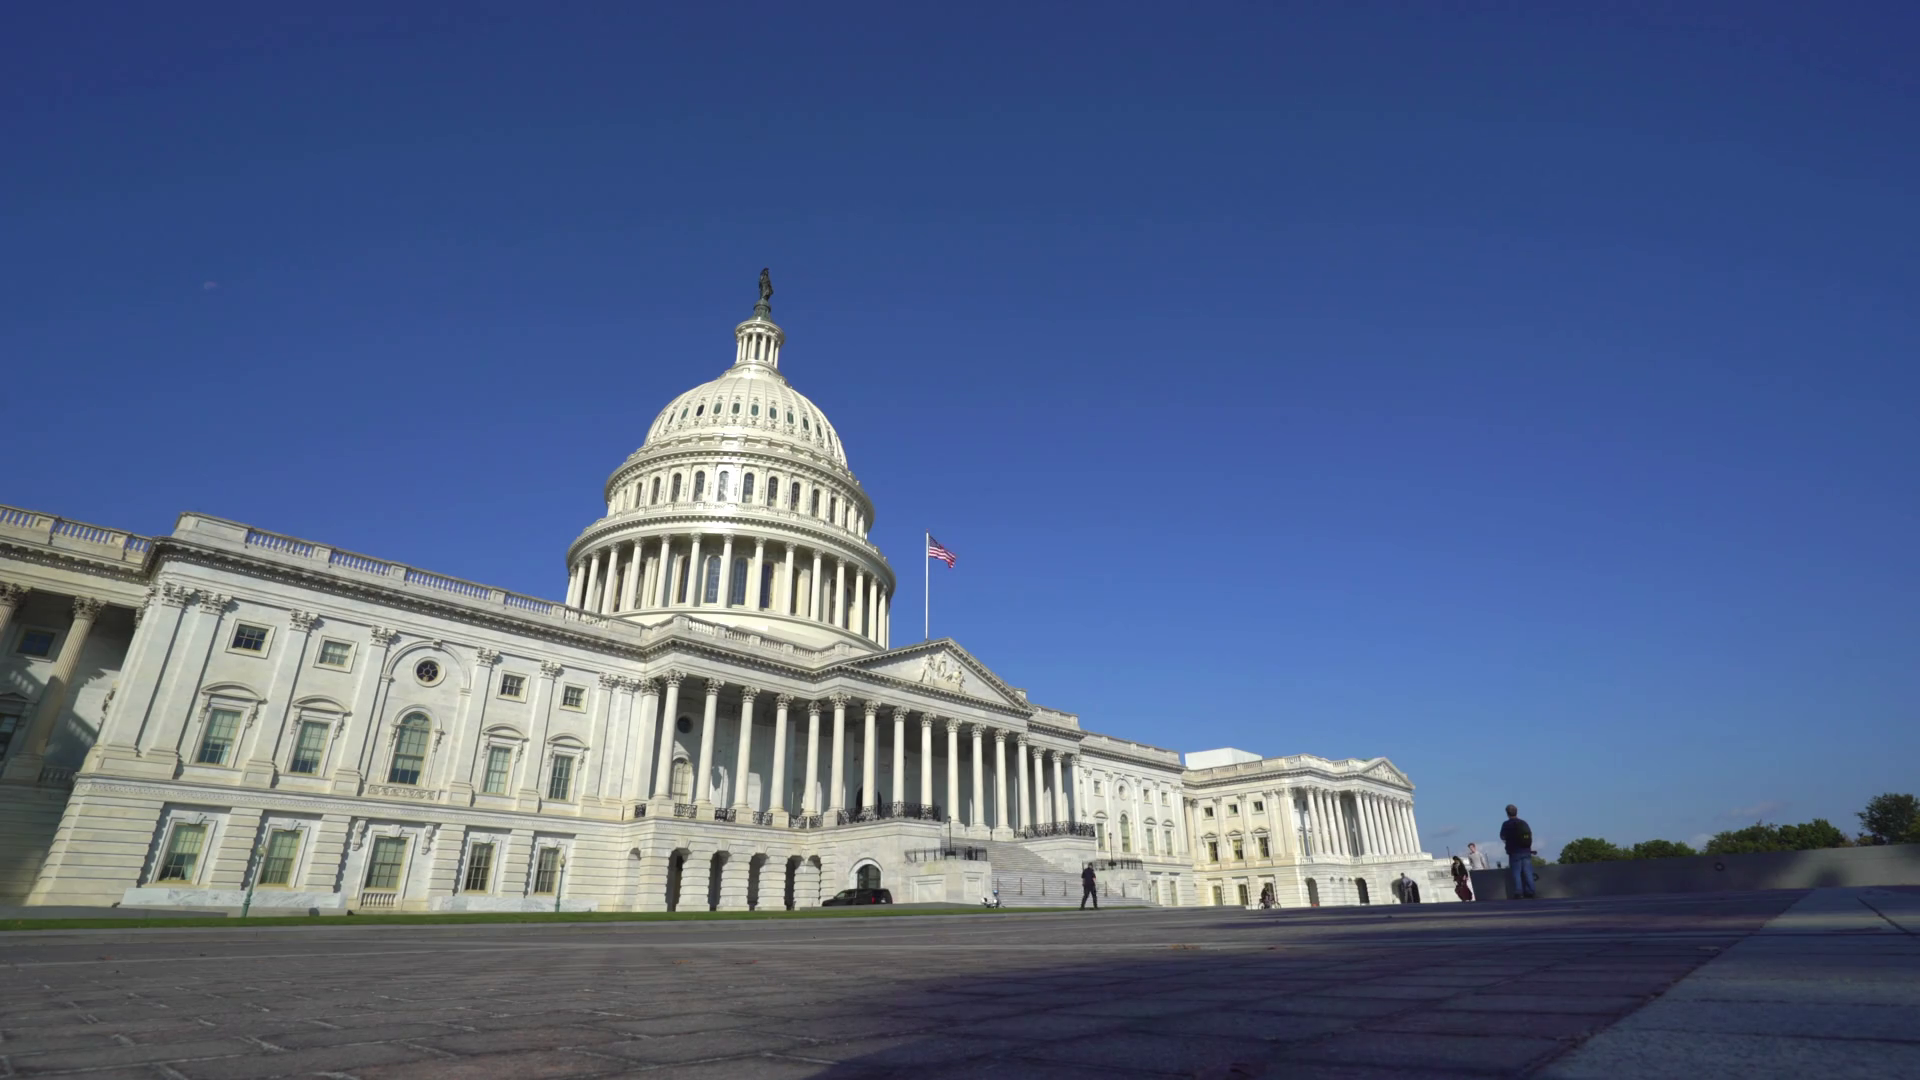 Us Capitol Building Low Angle View - Washington DC Stock Video Footage -  VideoBlocks - Capitol Building PNG HD